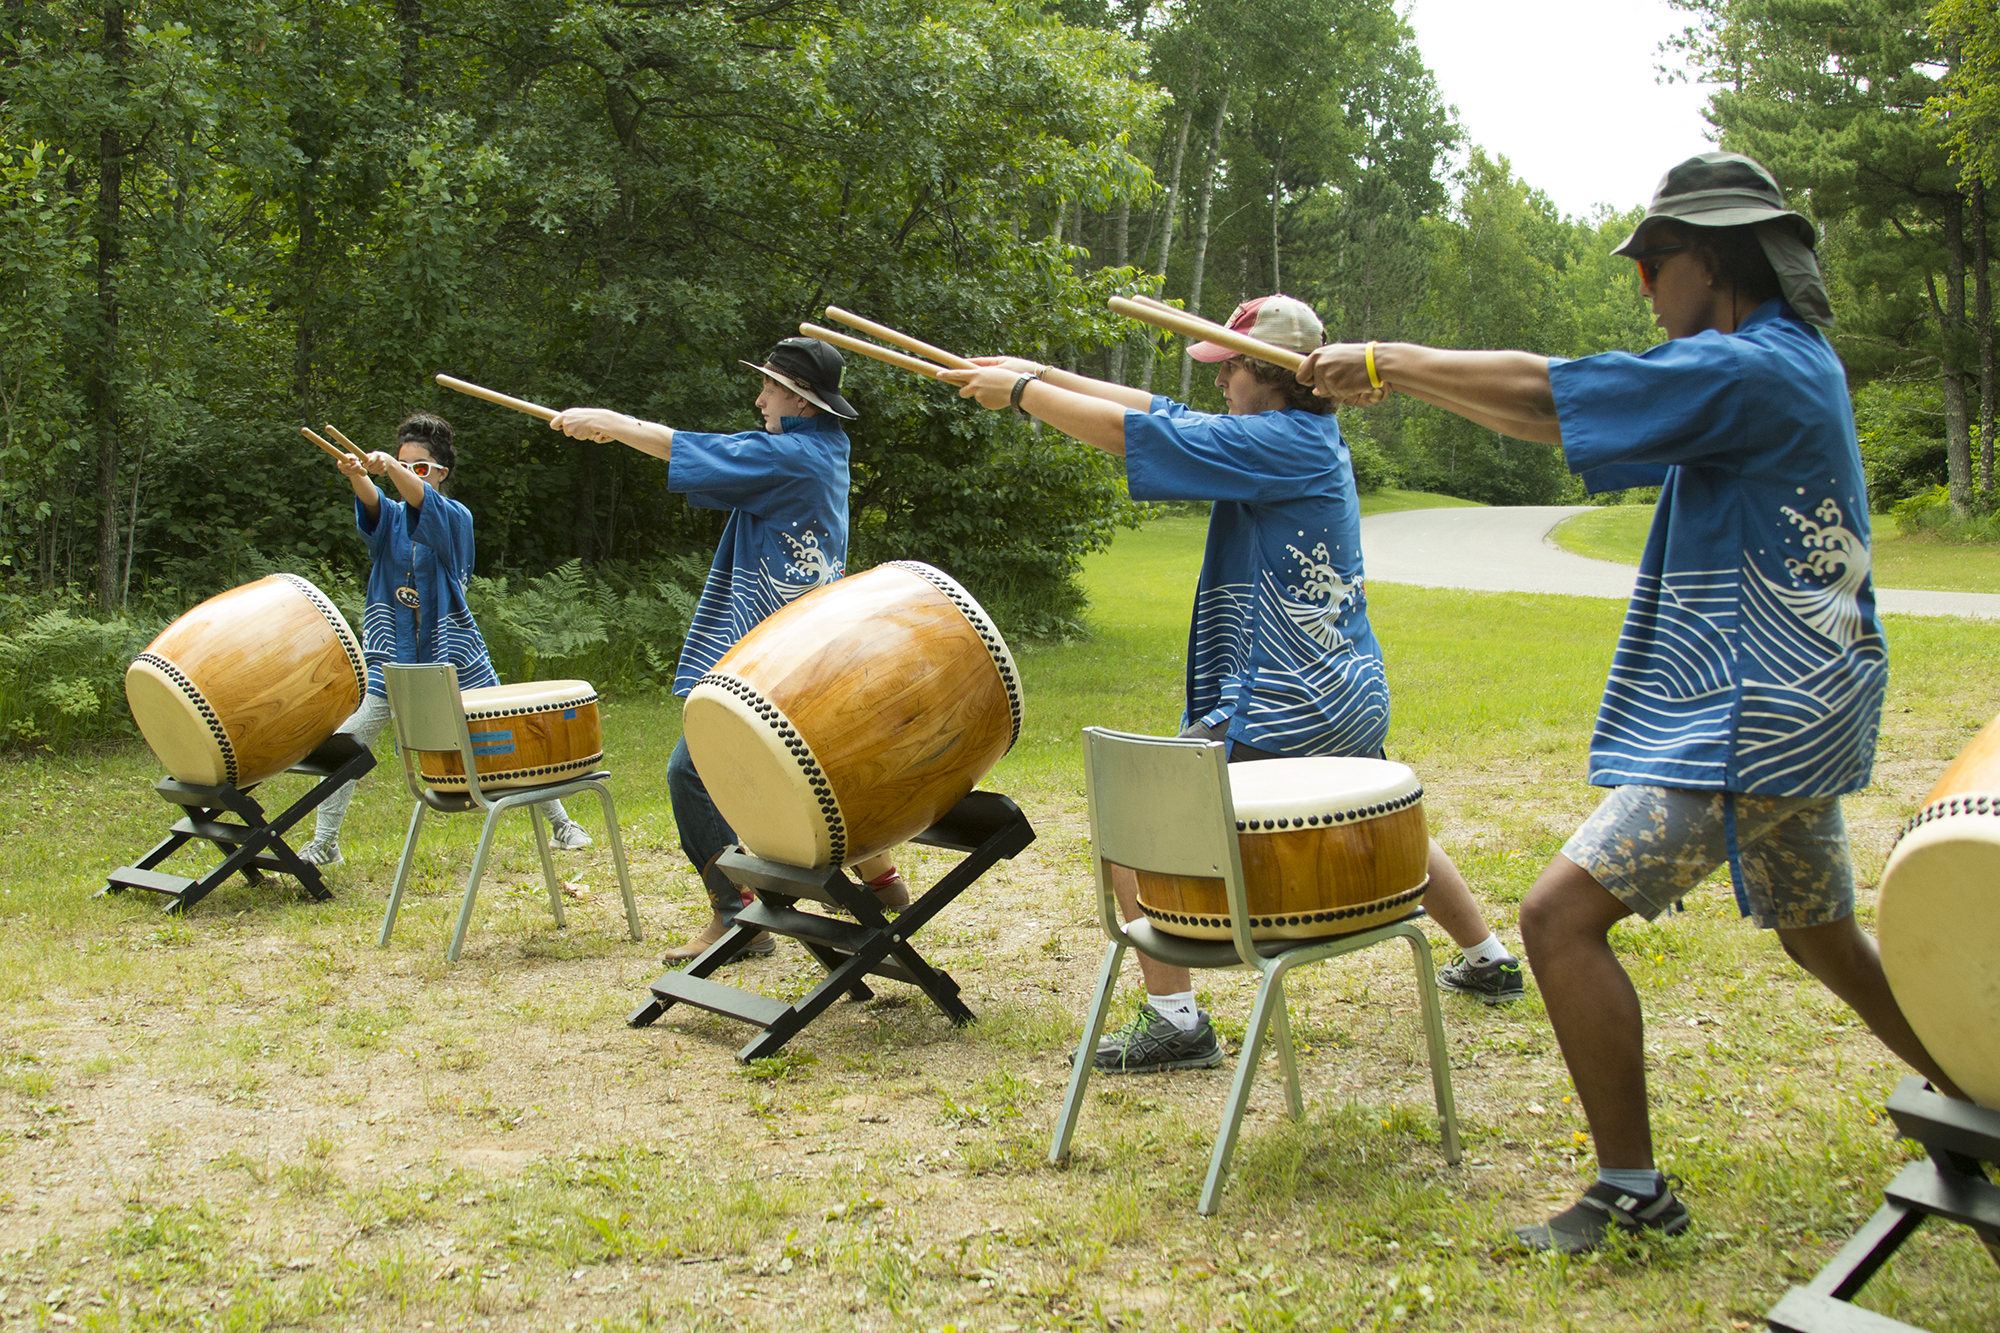 Taiko drumming is a popular activity among villagers of all ages